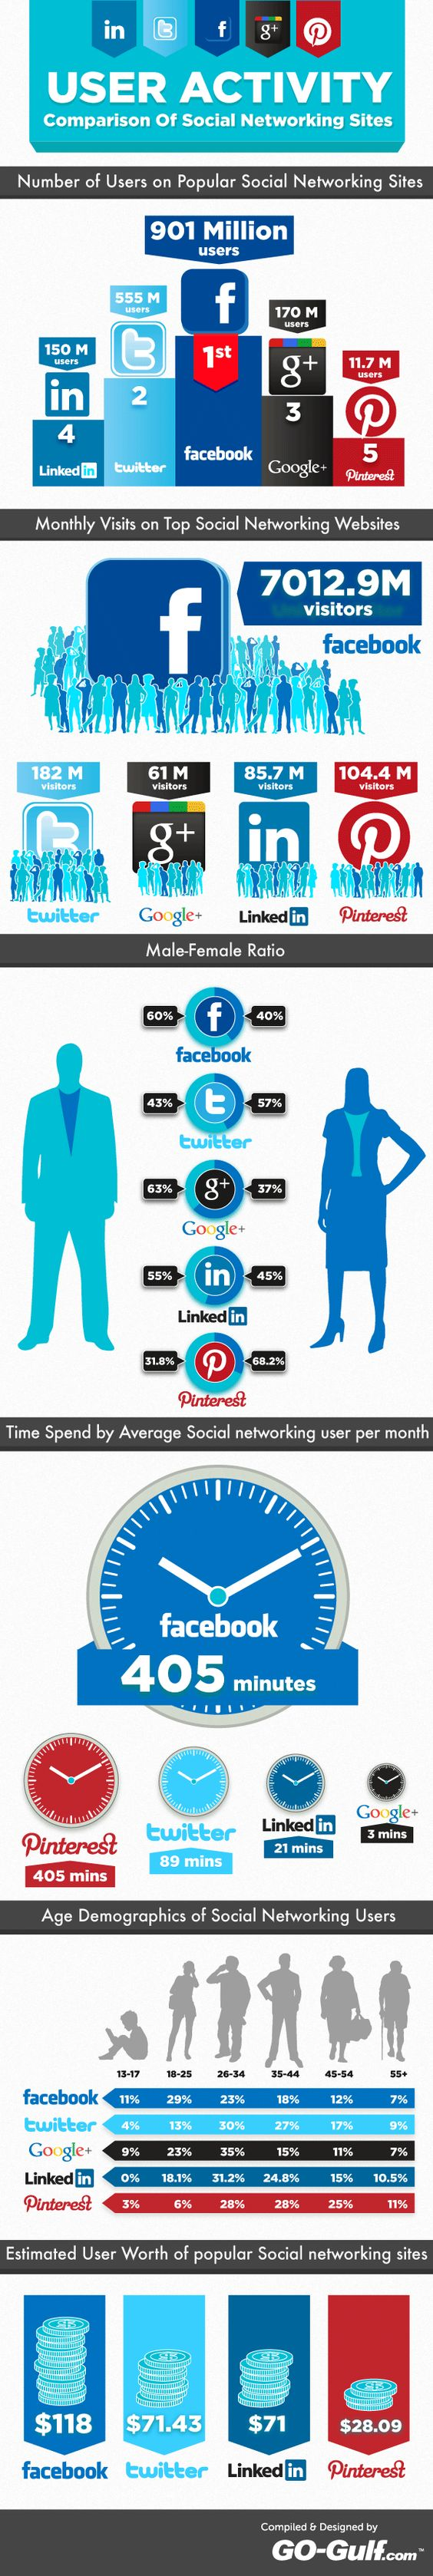 Comparación de la actividad de los usuarios en las redes más populares :: USER ACTIVITY COMPARISON OF POPULAR SOCIAL NETWORKING SITES « Infografías de Marketing